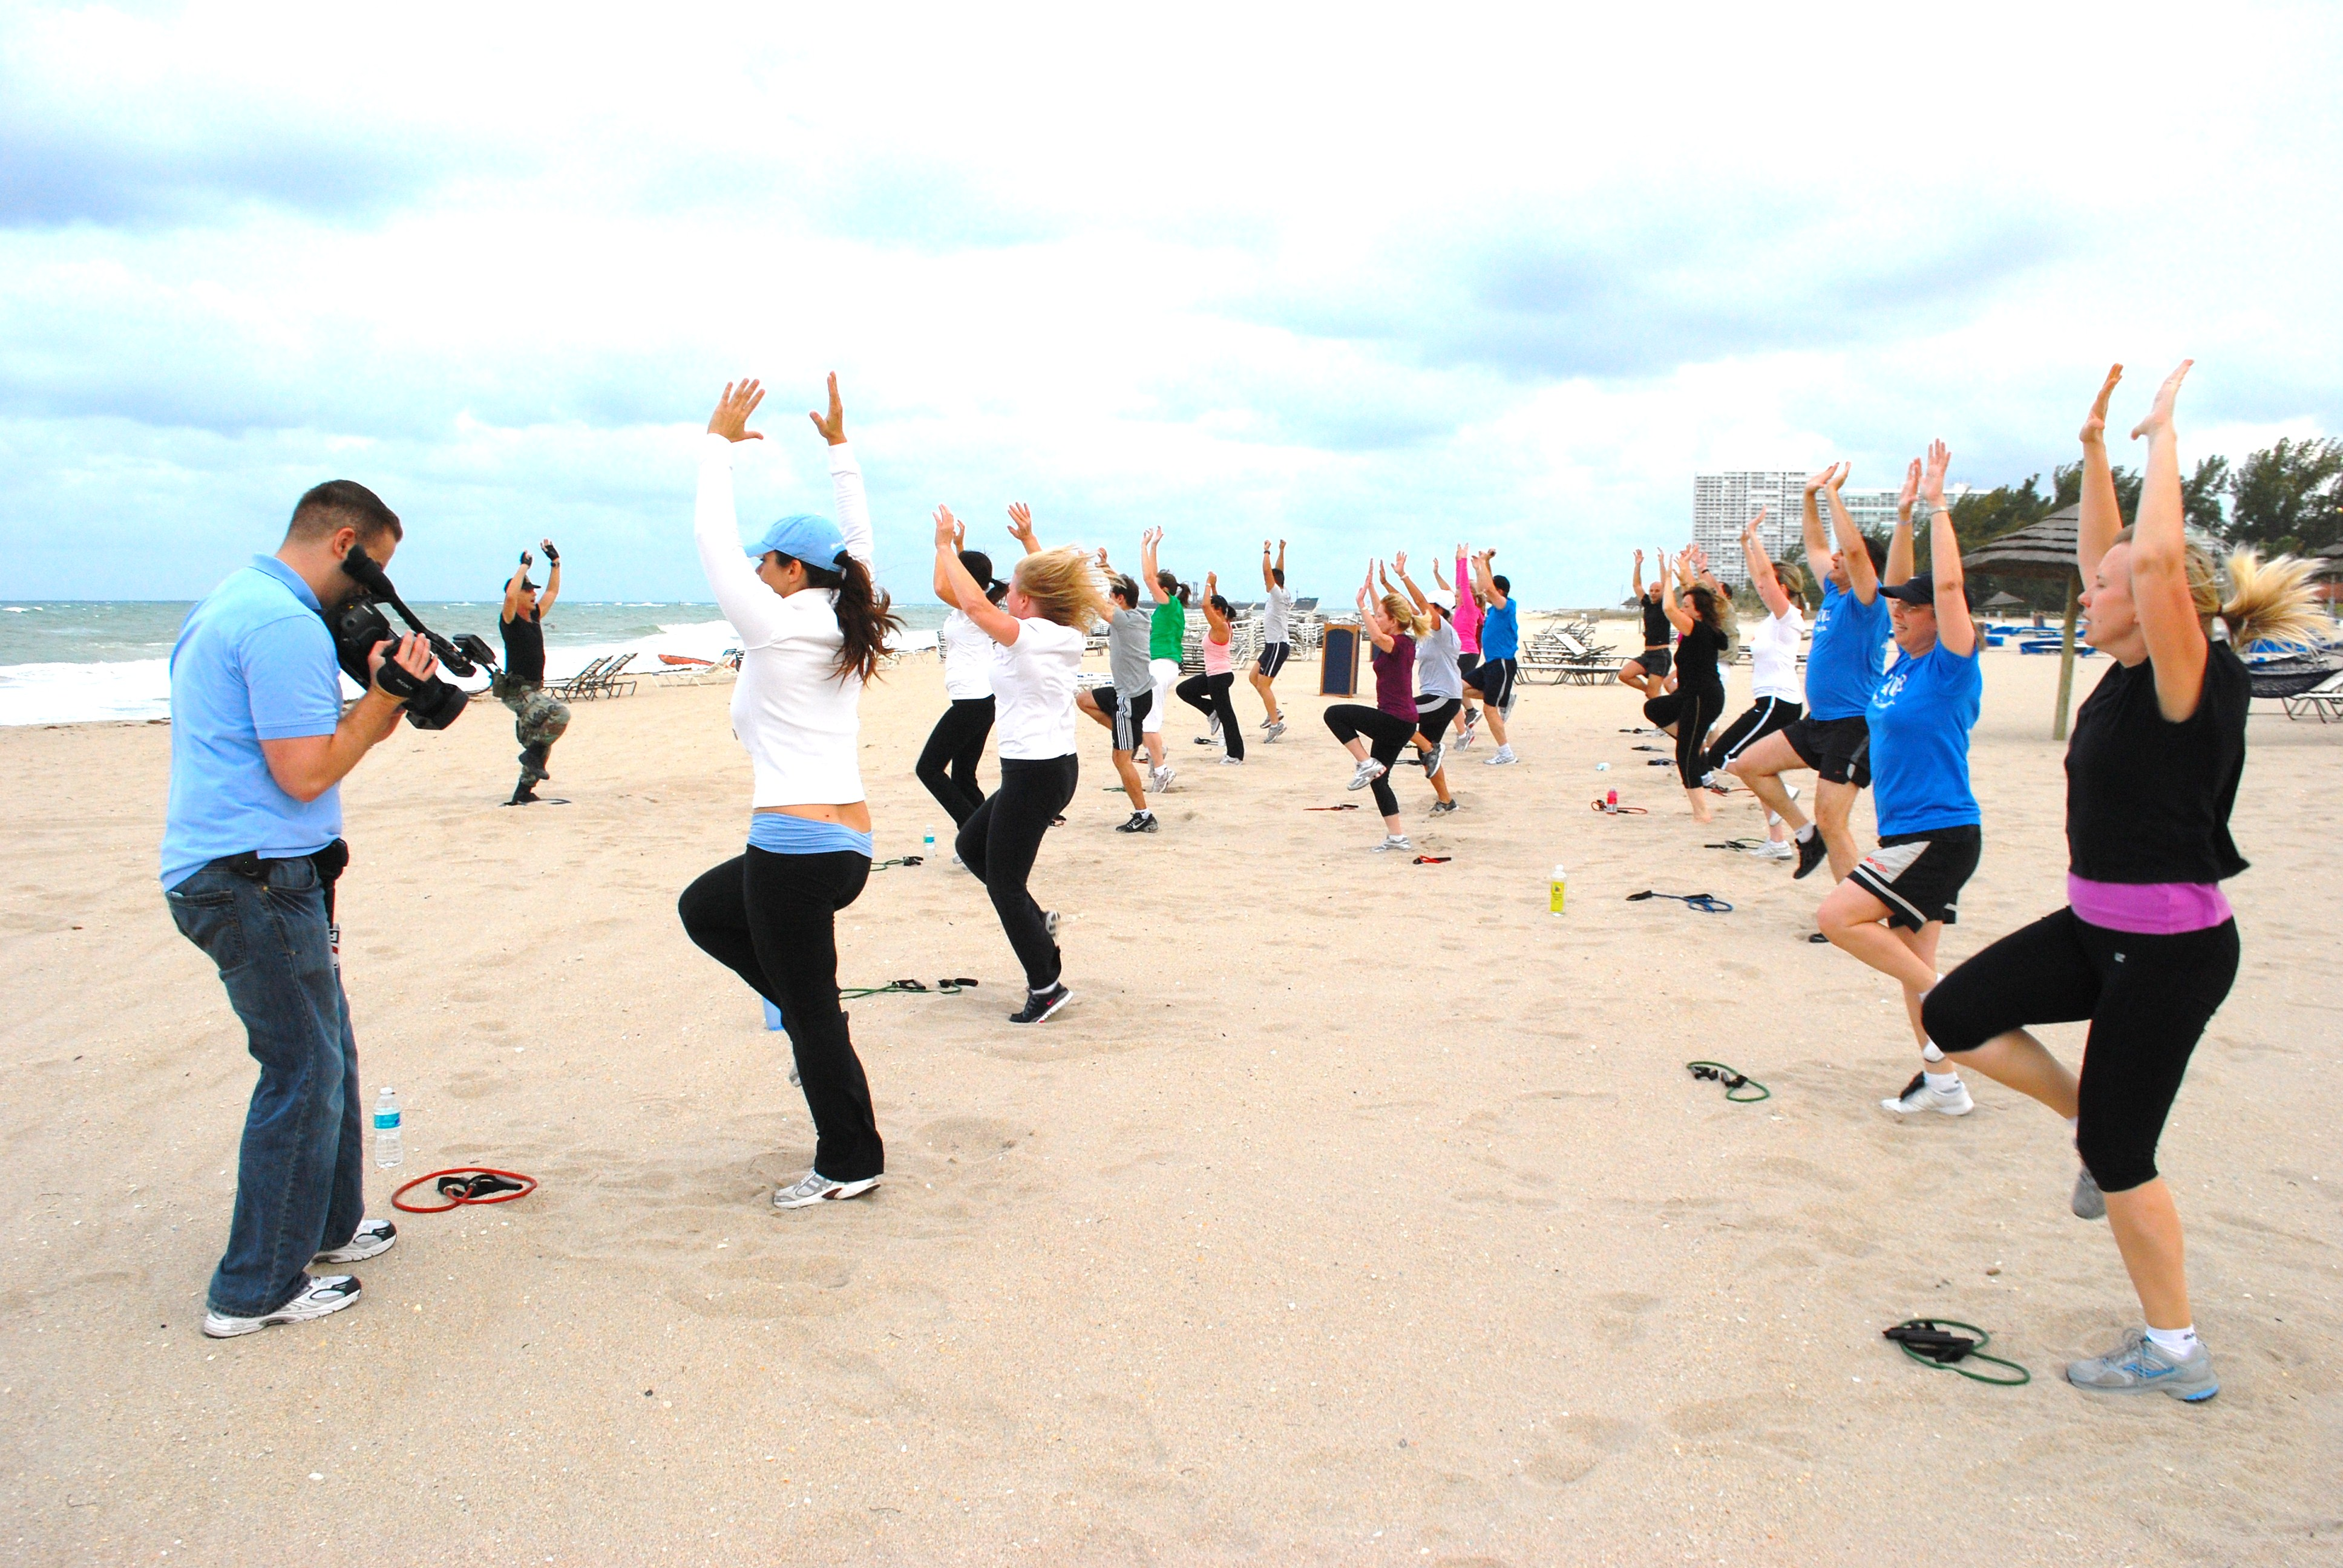 Colonel Bobs Beach Boot Camp Fort Lauderdale Fllt Col Bob Weinstein Ret Takes His Beach Boot Camp Class At The Harbor Beach Marriott On Fort